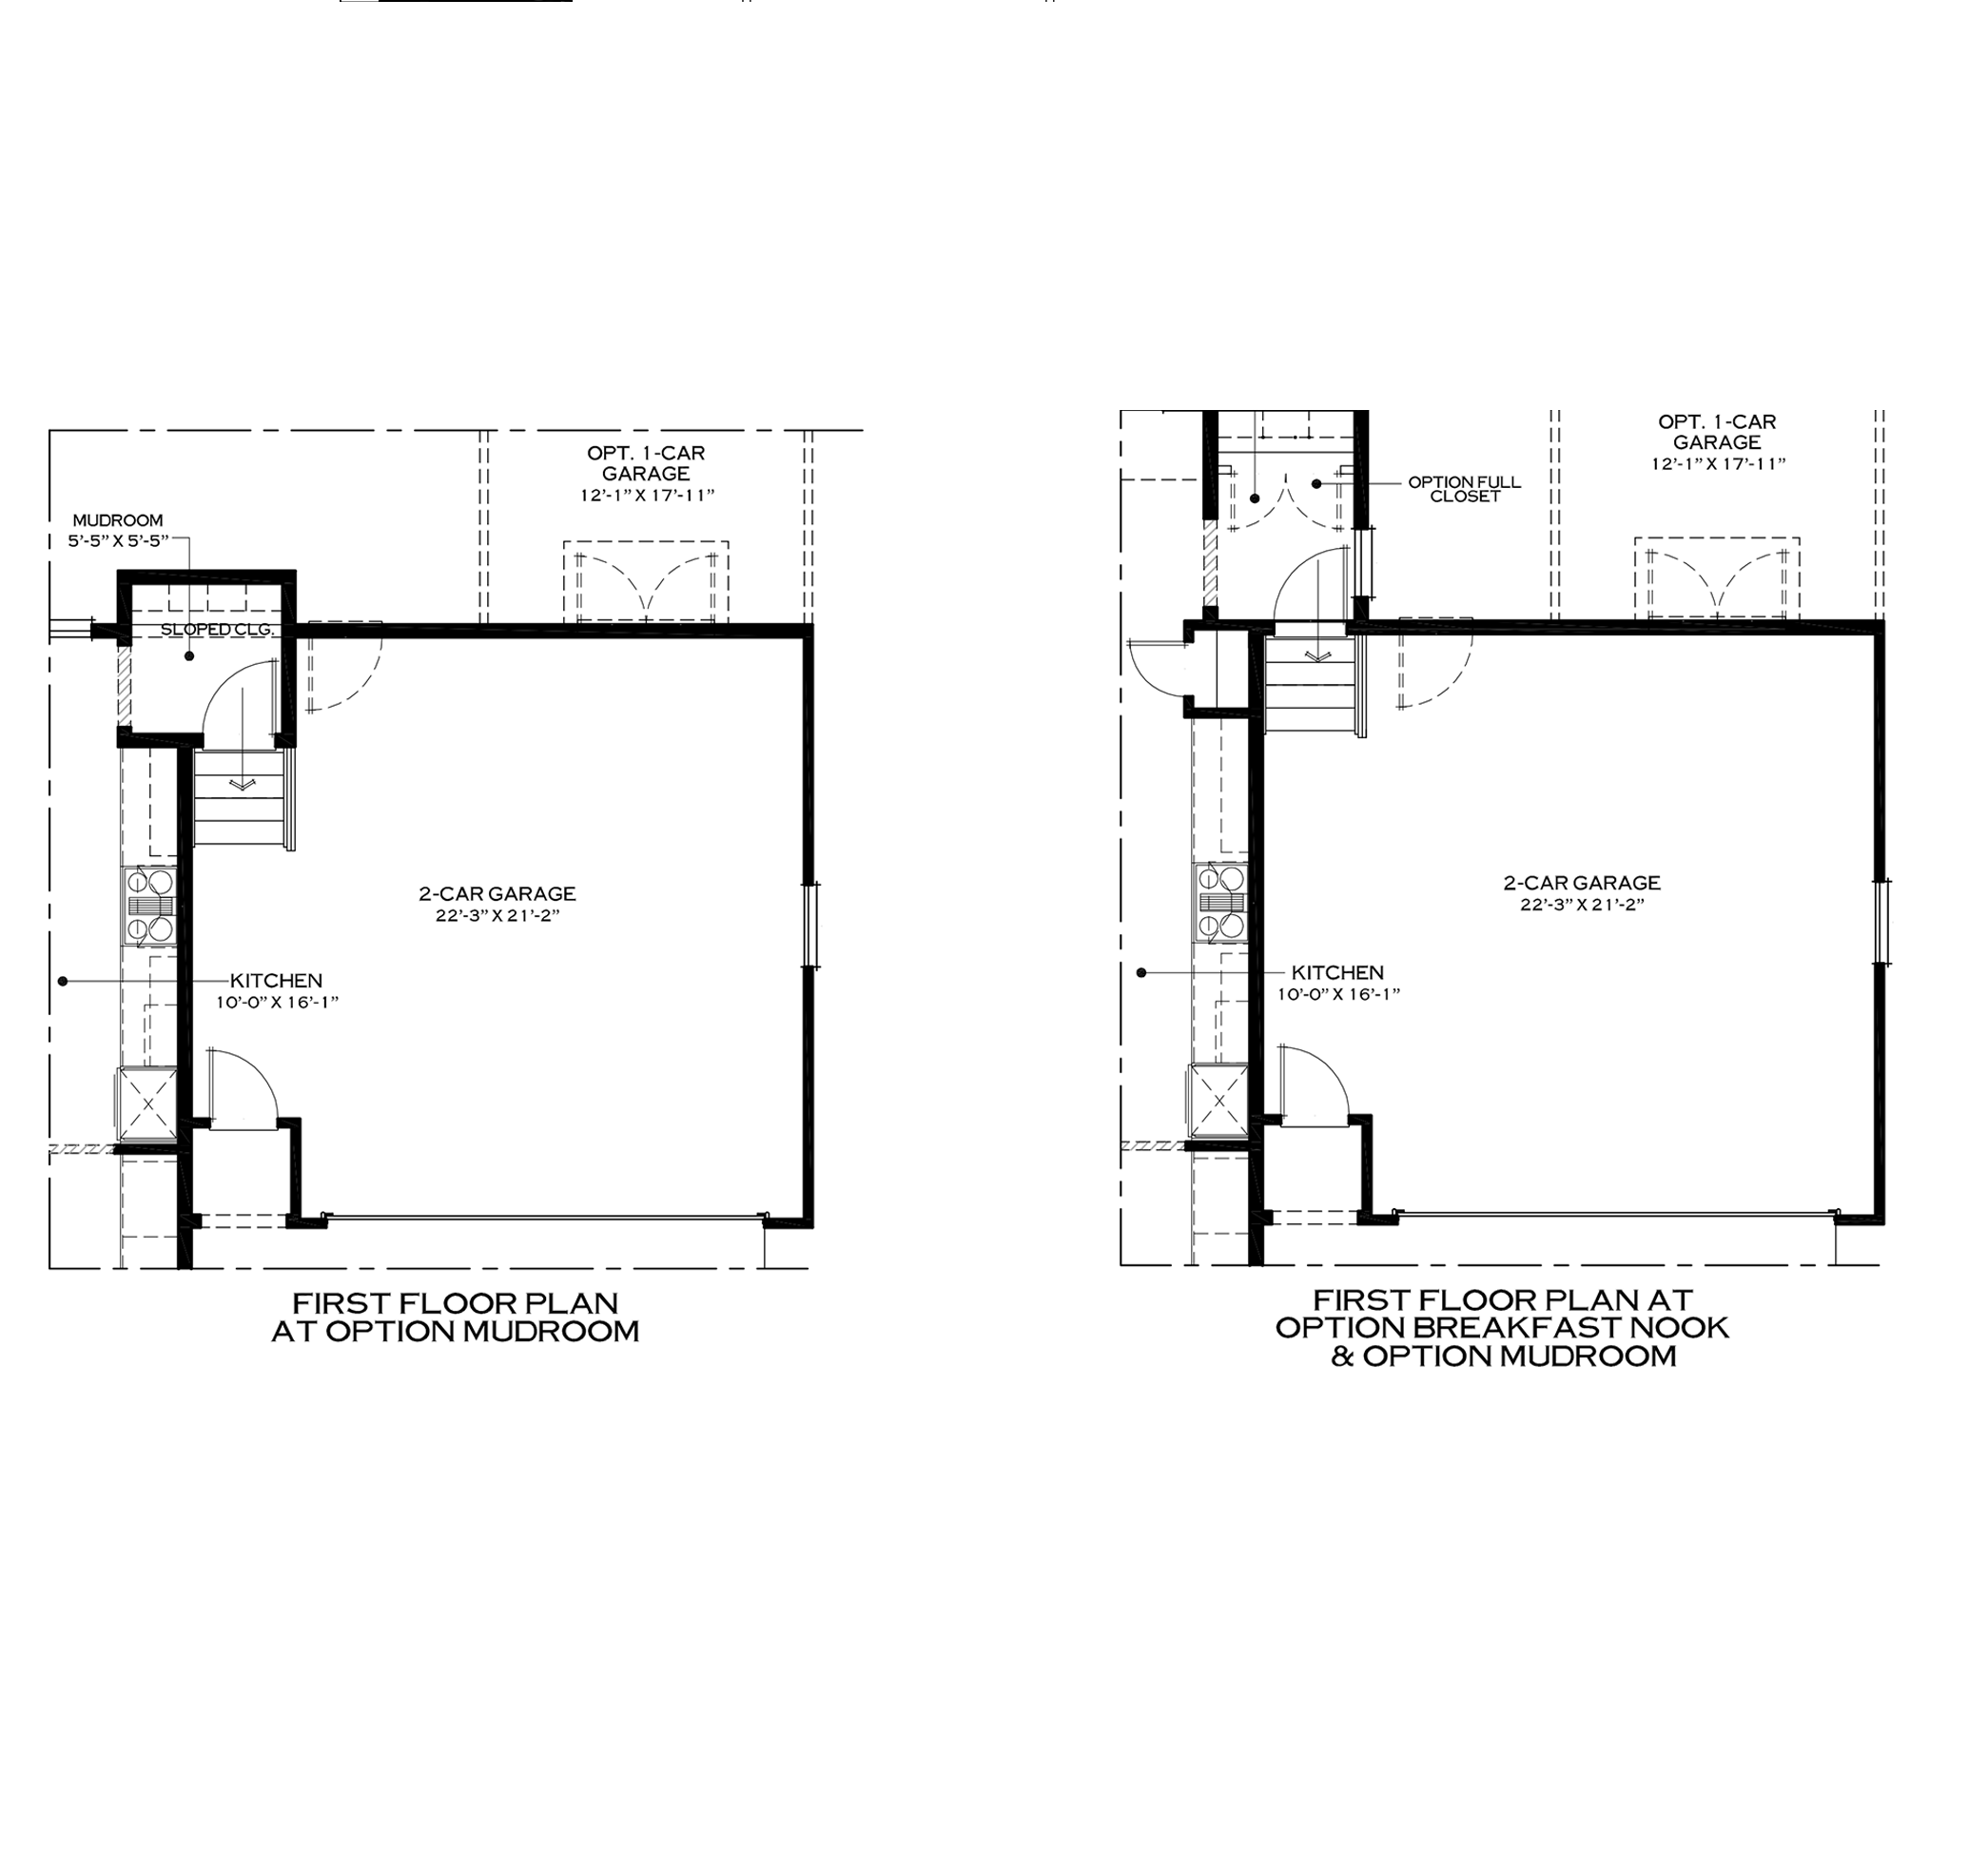 First Floor Mudroom Options